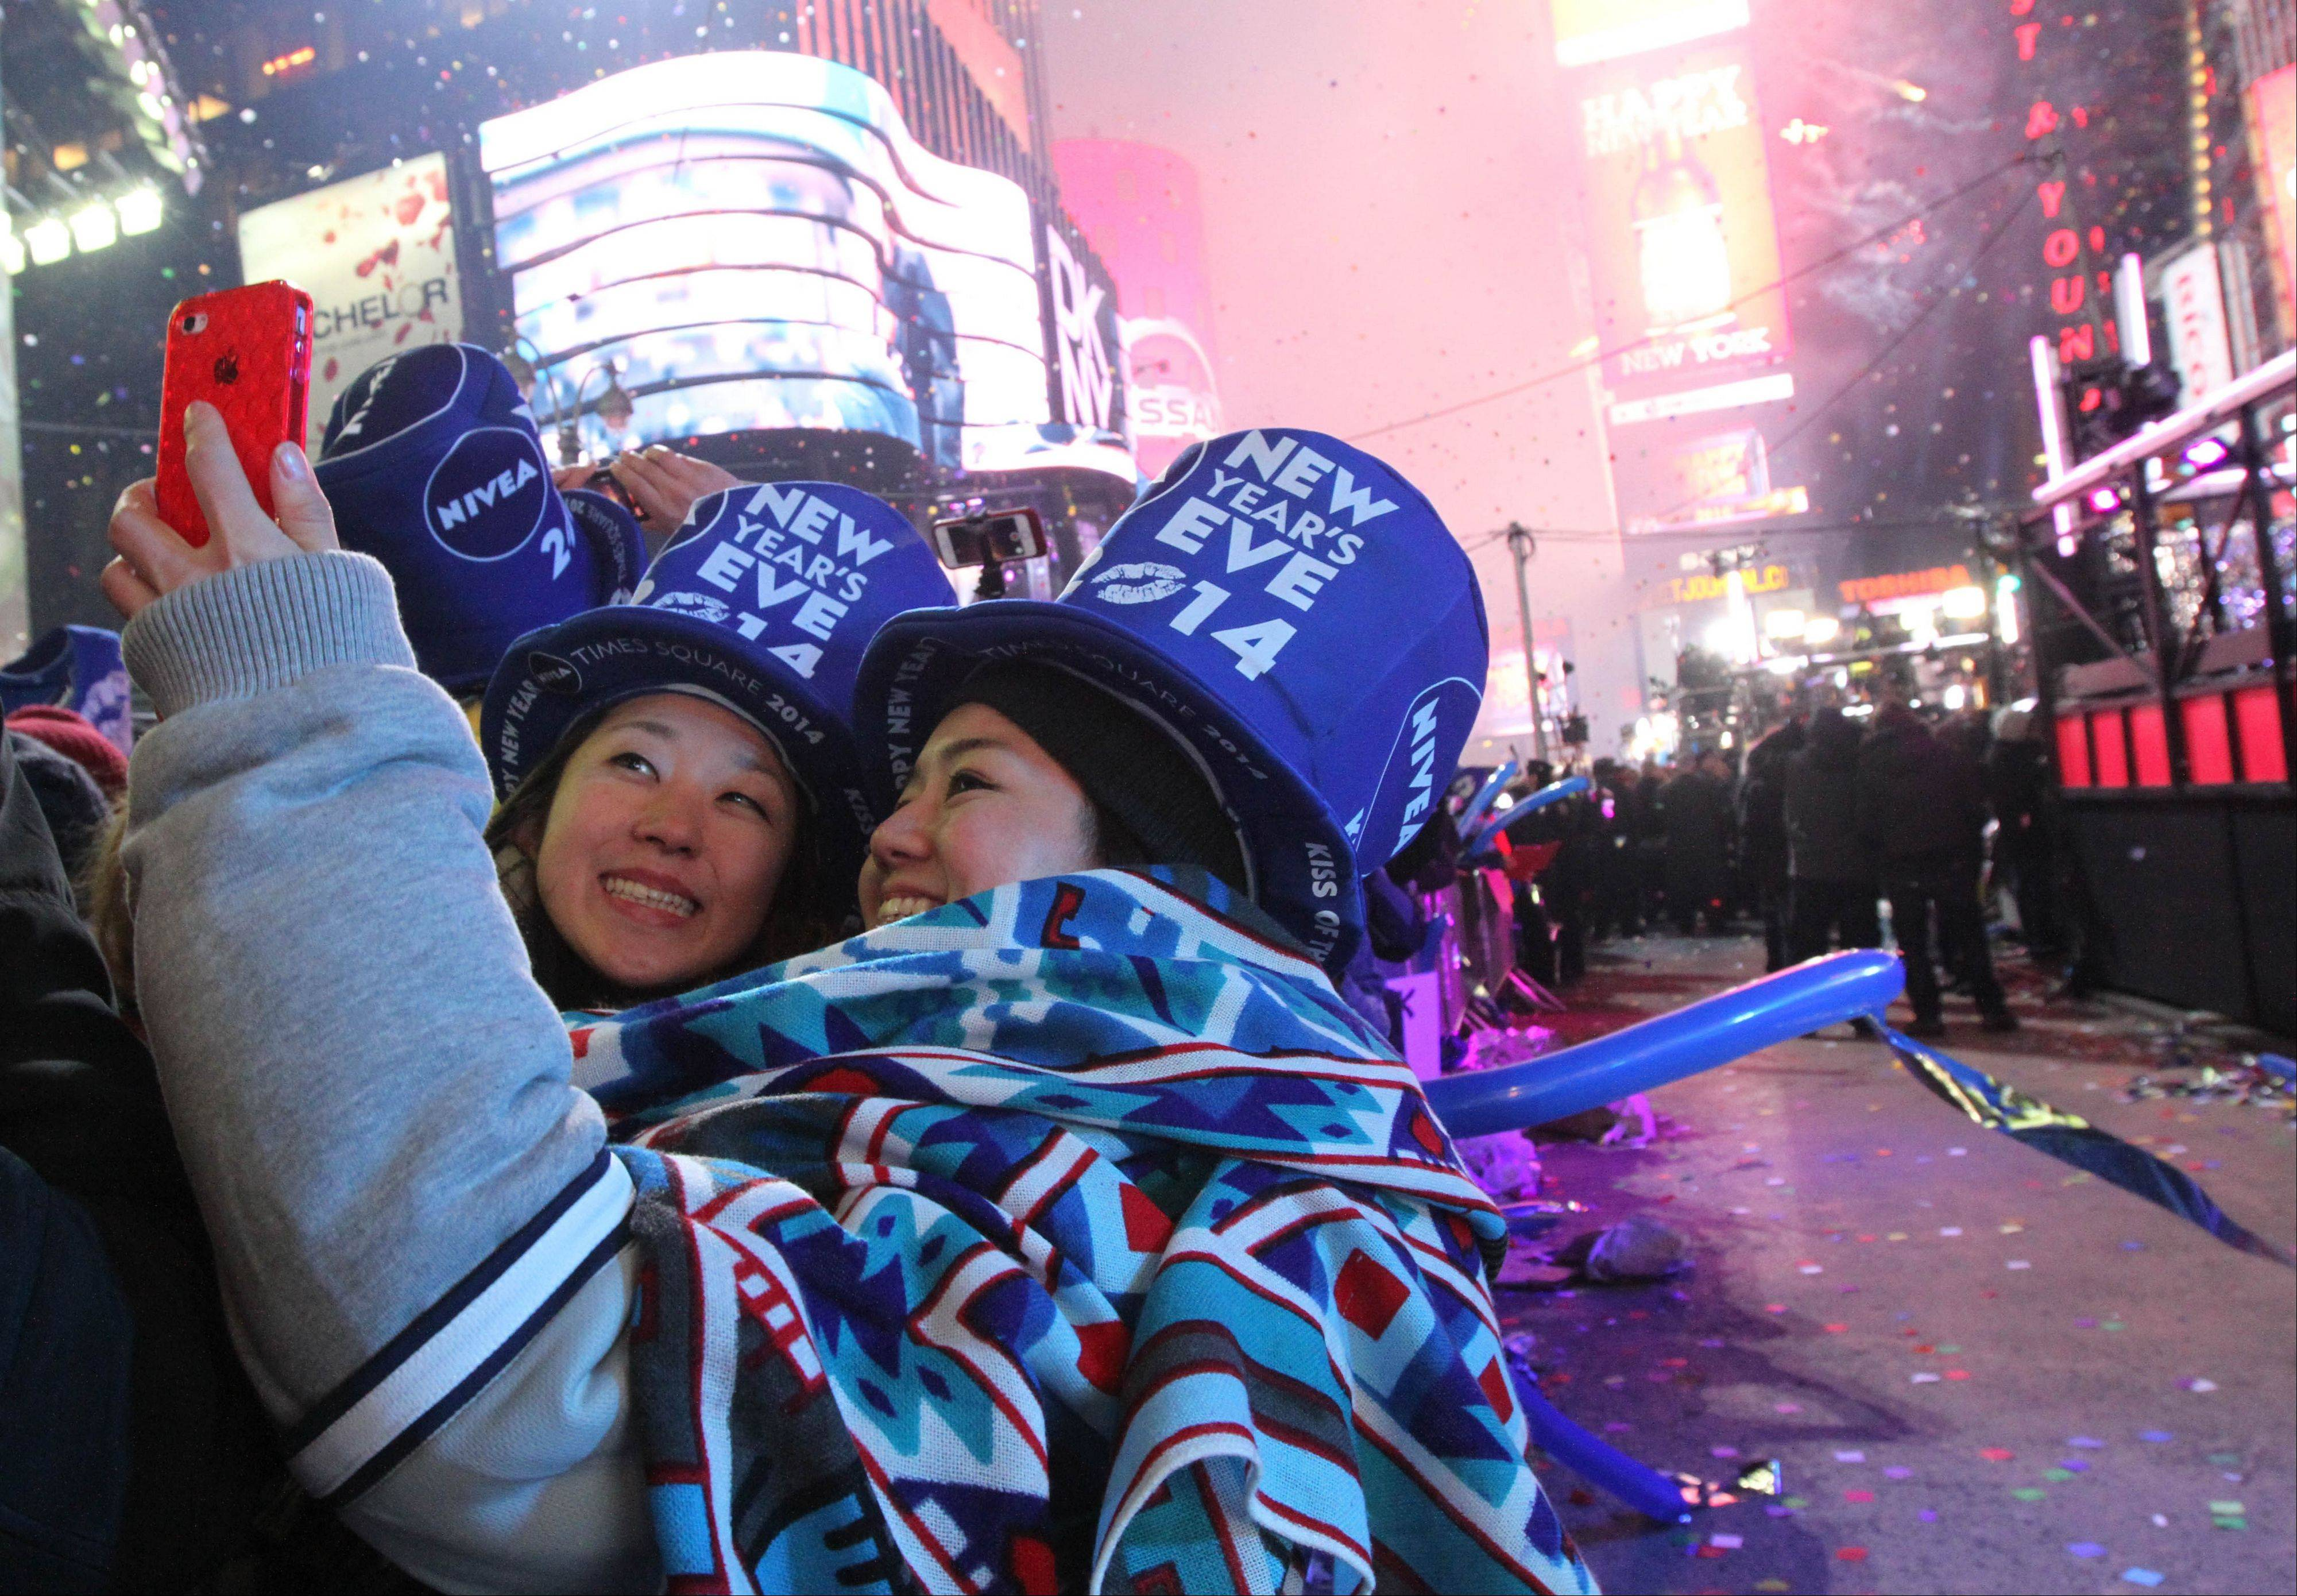 Revelers take part in the festivities in New York's Times Square shortly after midnight New Year's Day Wednesday Jan. 1, 2014.